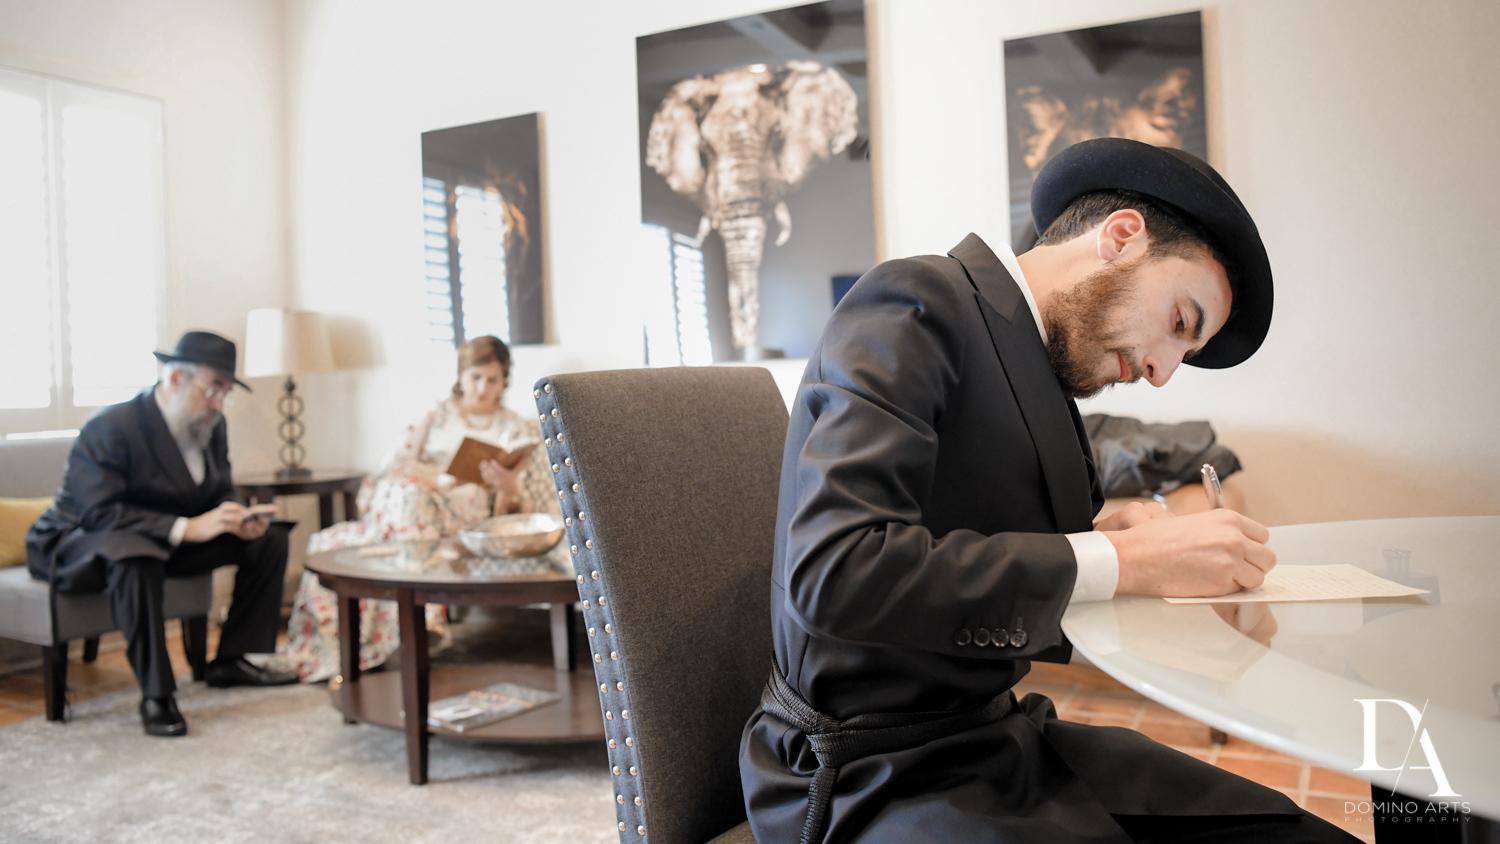 vows at Hasidic Jewish Wedding at The Addison in Boca Raton by Domino Arts Photography